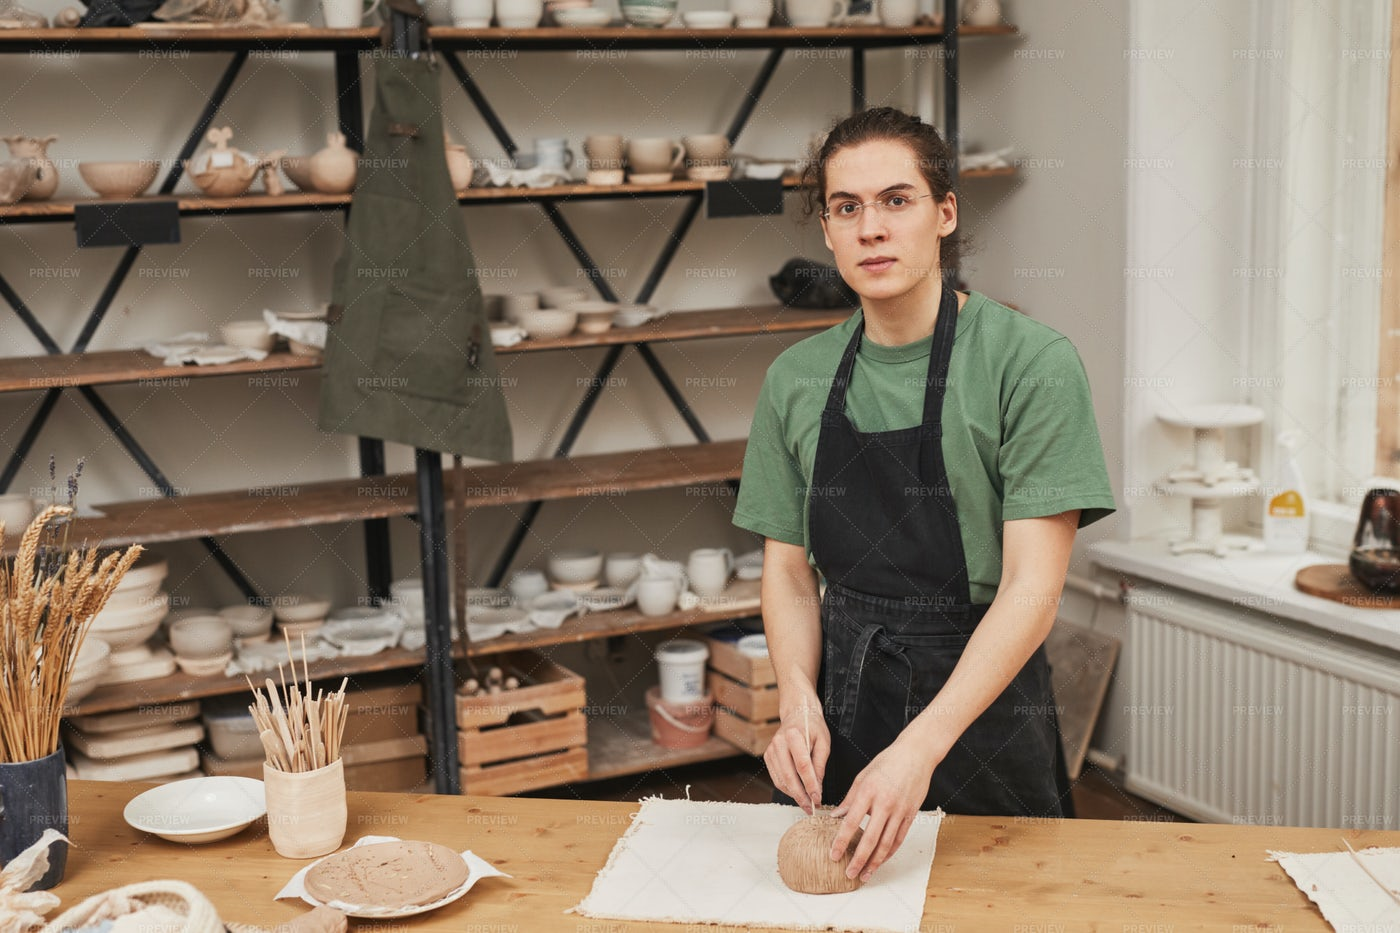 Artist In Pottery Workshop: Stock Photos